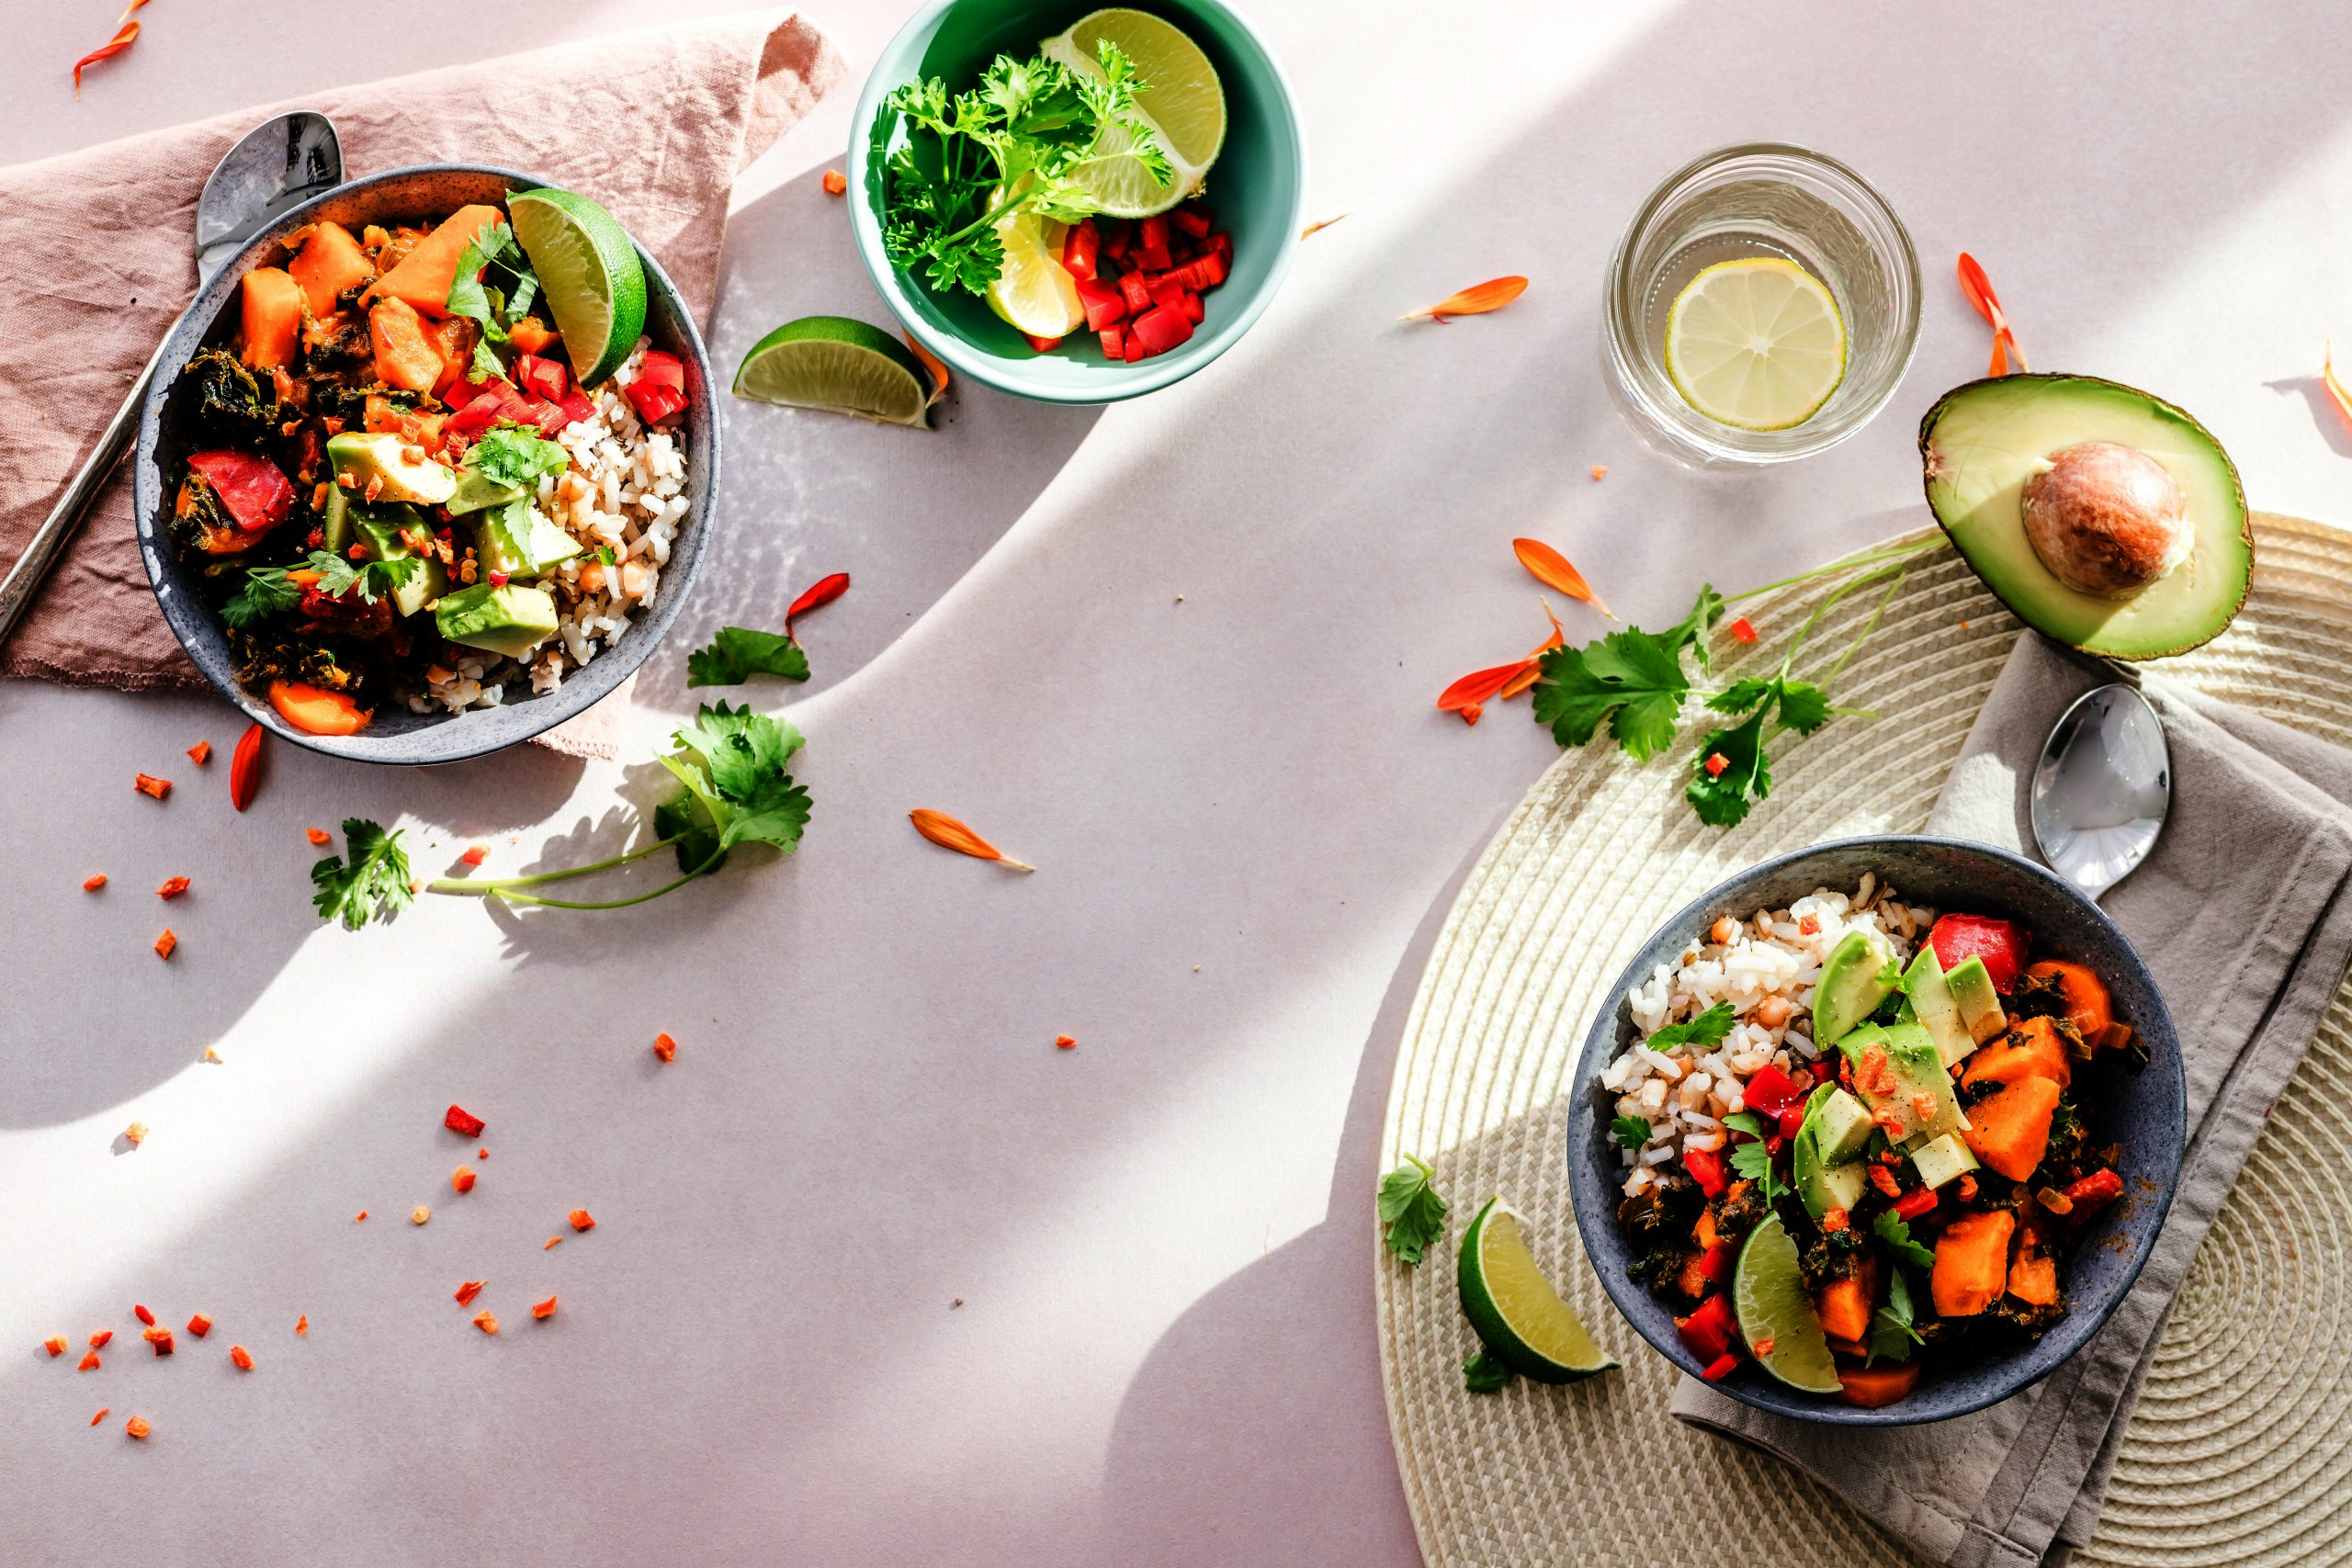 Salads on a table